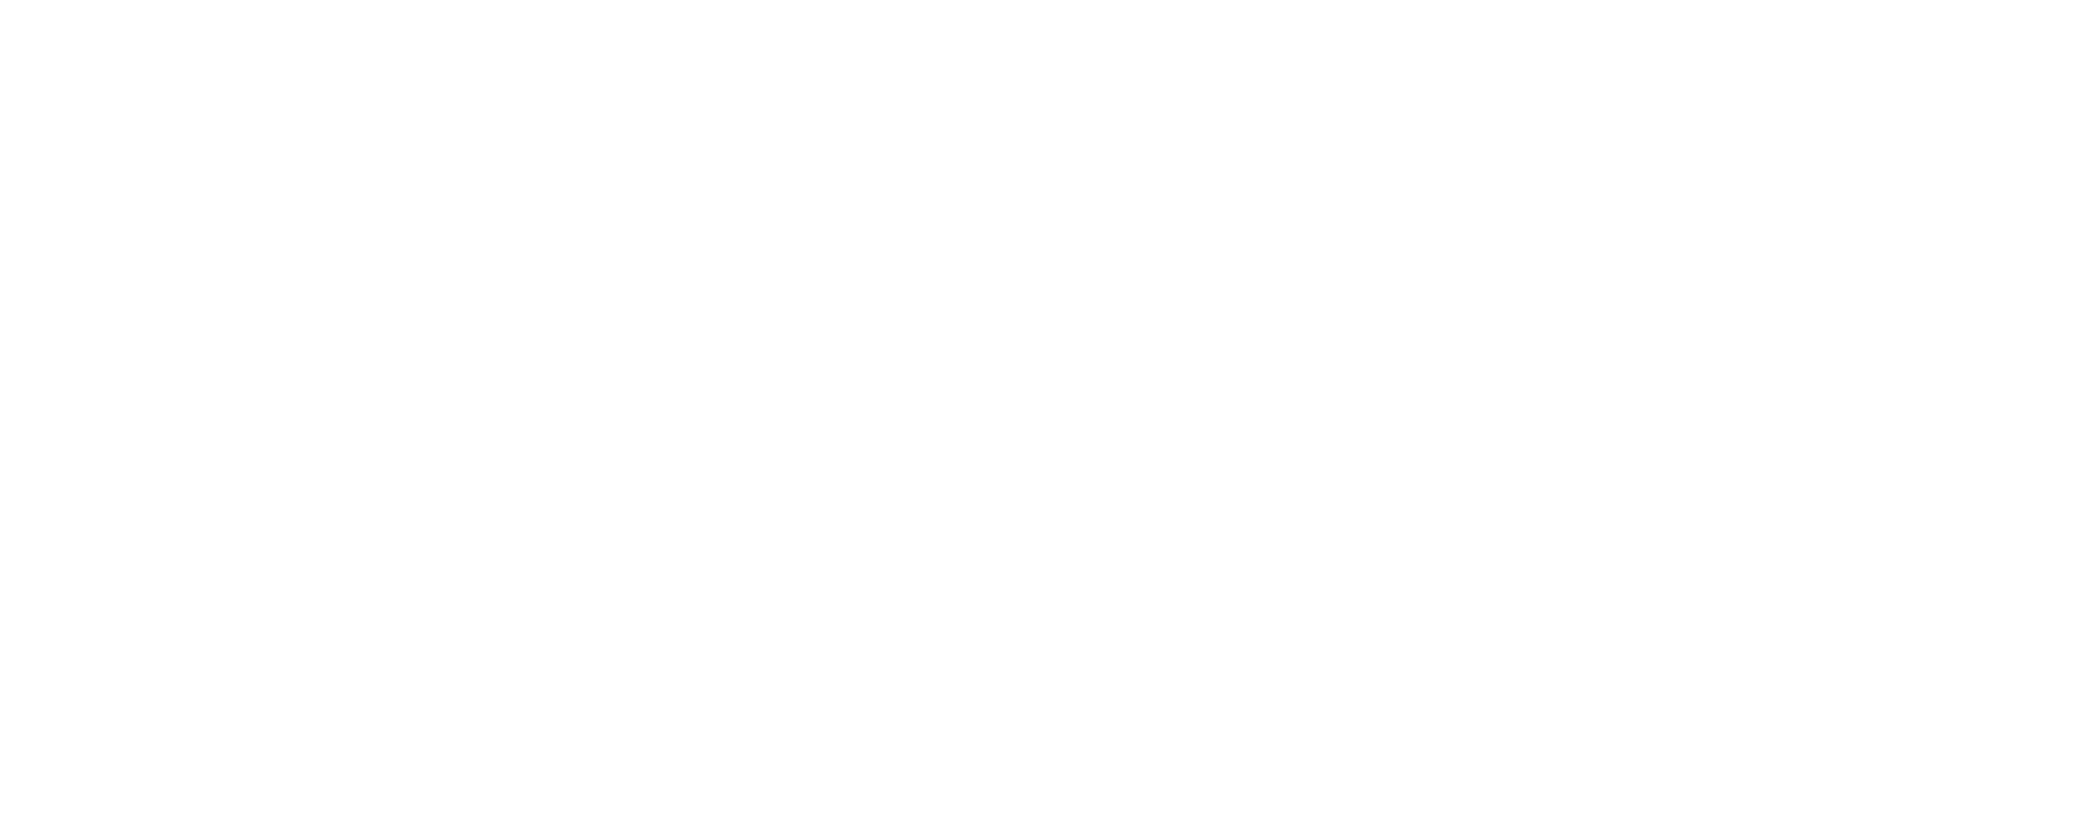 Cactus Lanscaping